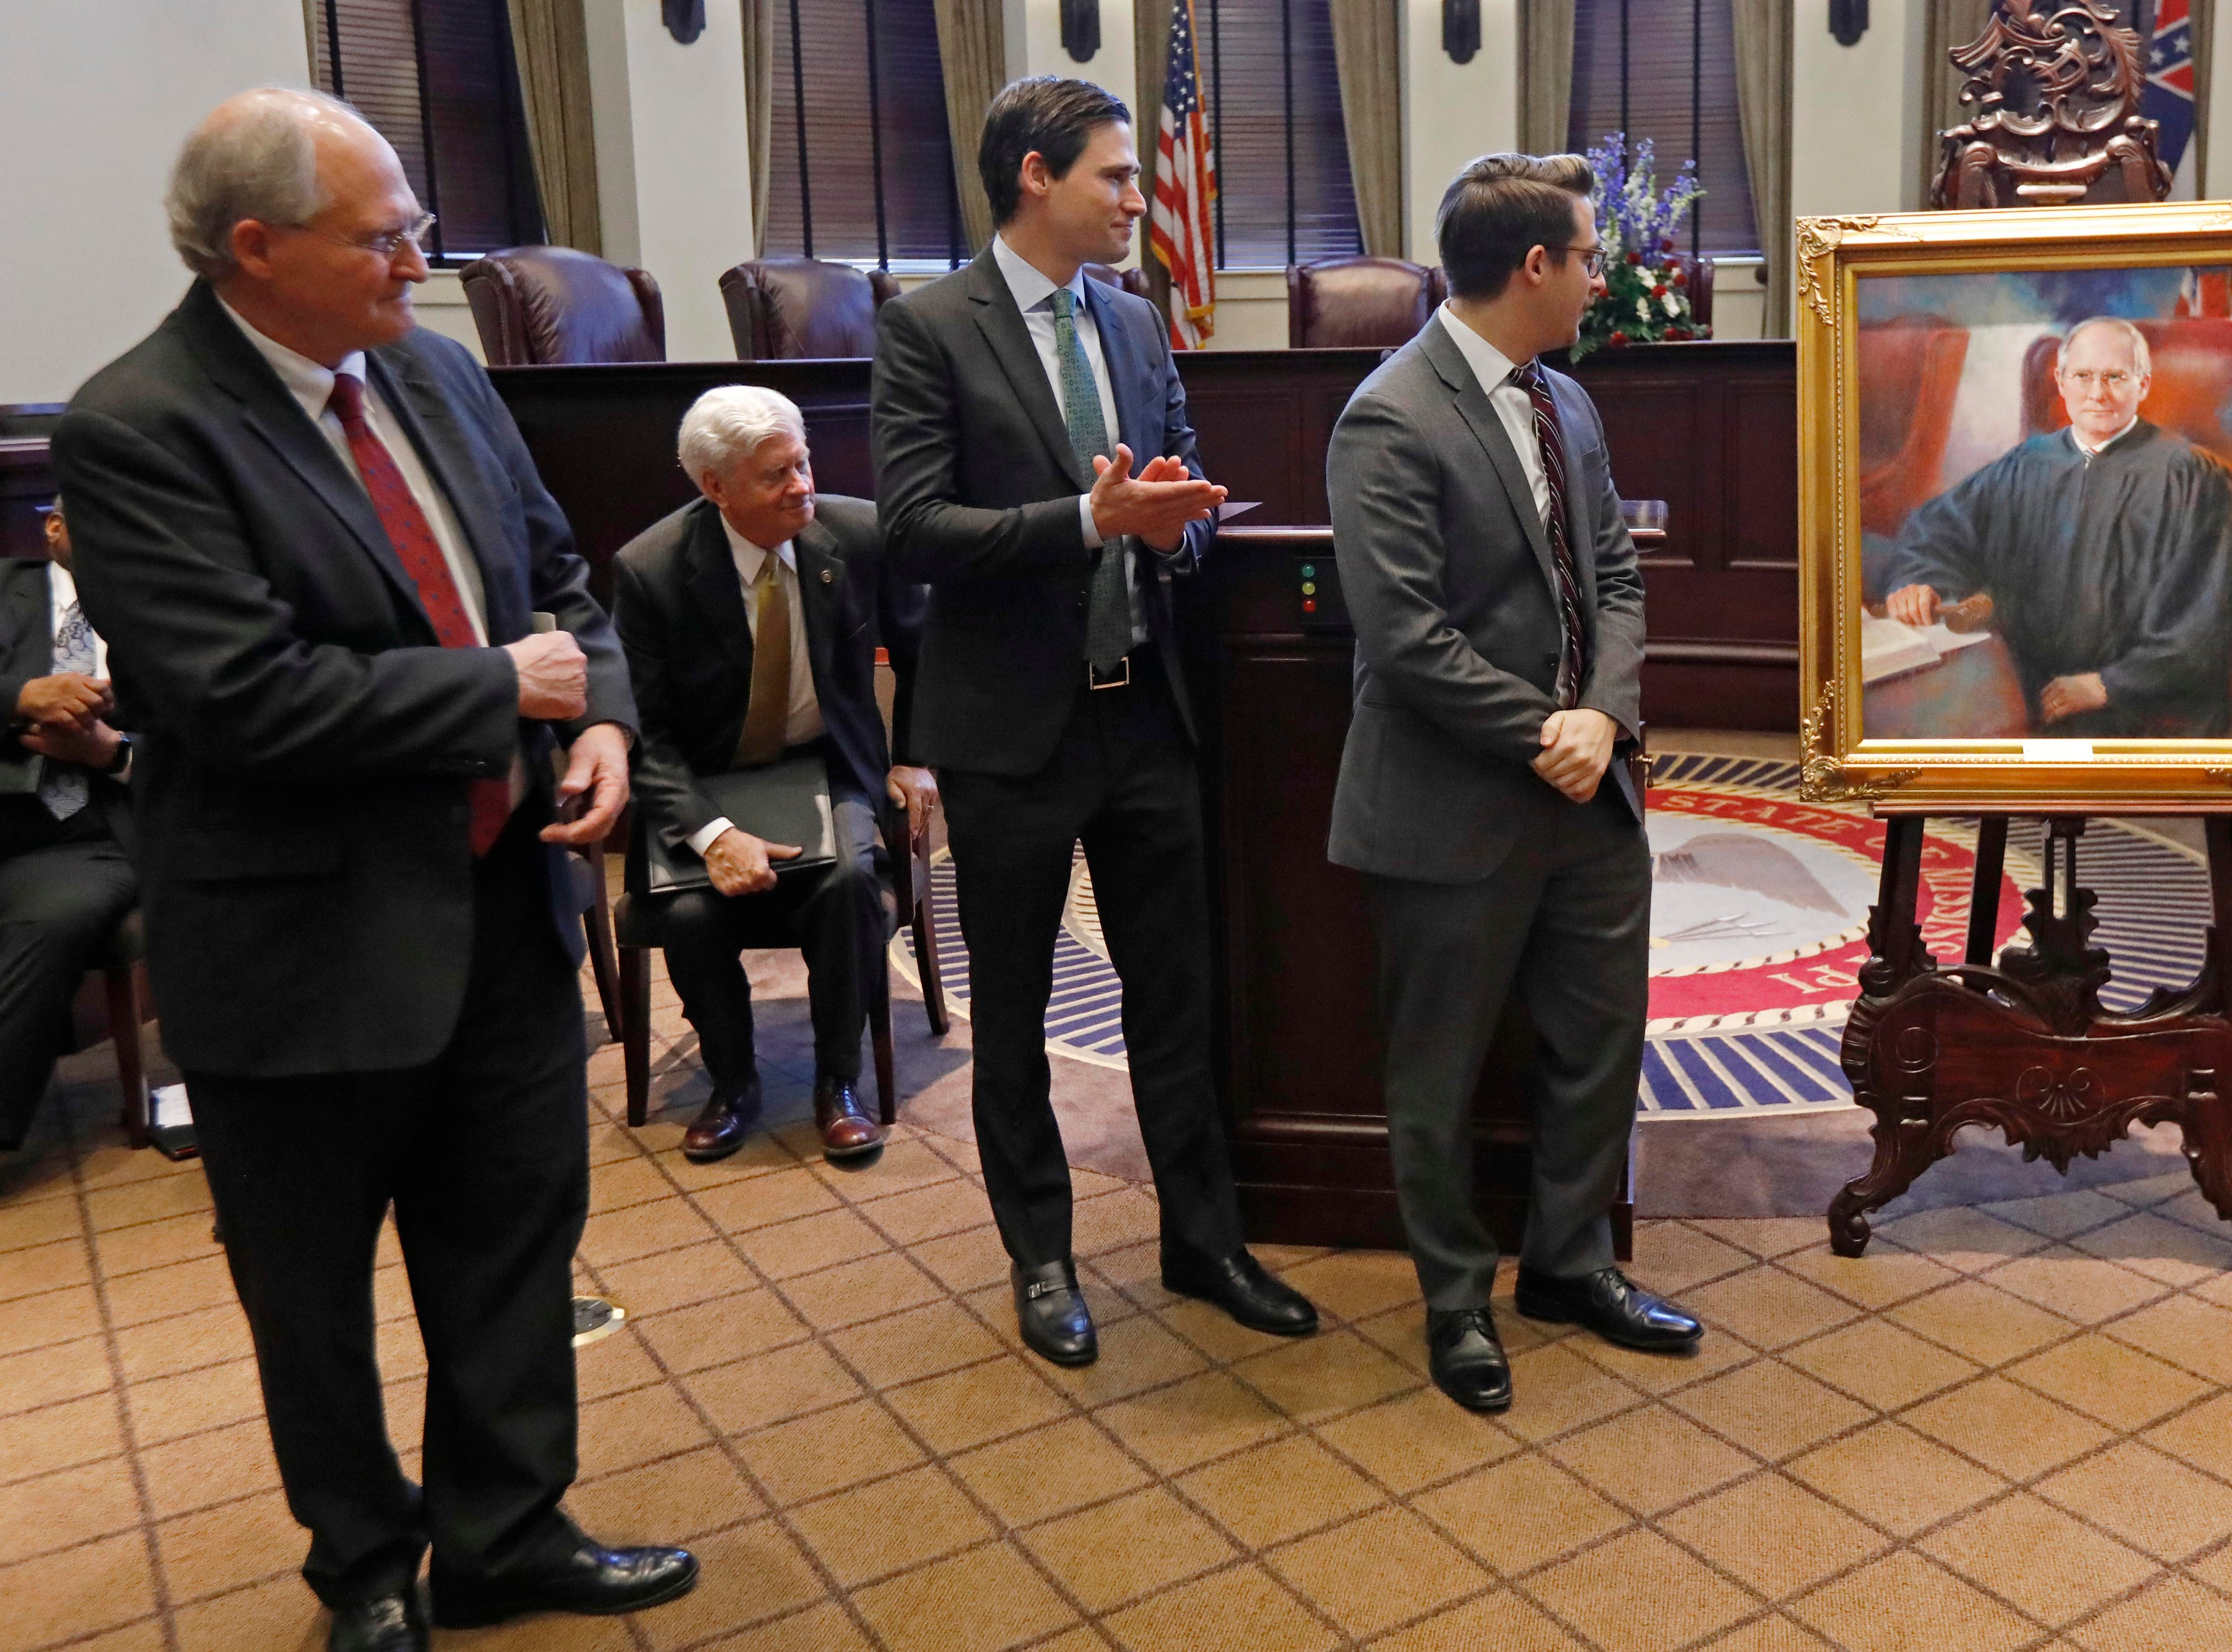 Mississippi Supreme Court Chief Justice William L. Waller Jr., left, watches as his sons Dr. William L. Waller III, second from left, brother Clayton Waller, center, assist their mother Charlotte Waller, right, as they unveil the chief justice's portrait during his retirement ceremony in the Supreme Court chambers in Jackson, Miss., Friday, Jan. 25, 2019. The portrait will be hanged in the courthouse with other chief justices' portraits. Waller officially retires on January 31 after more than 21 years of service on the Supreme Court and 10 years as Chief Justice. (AP Photo/Rogelio V. Solis)